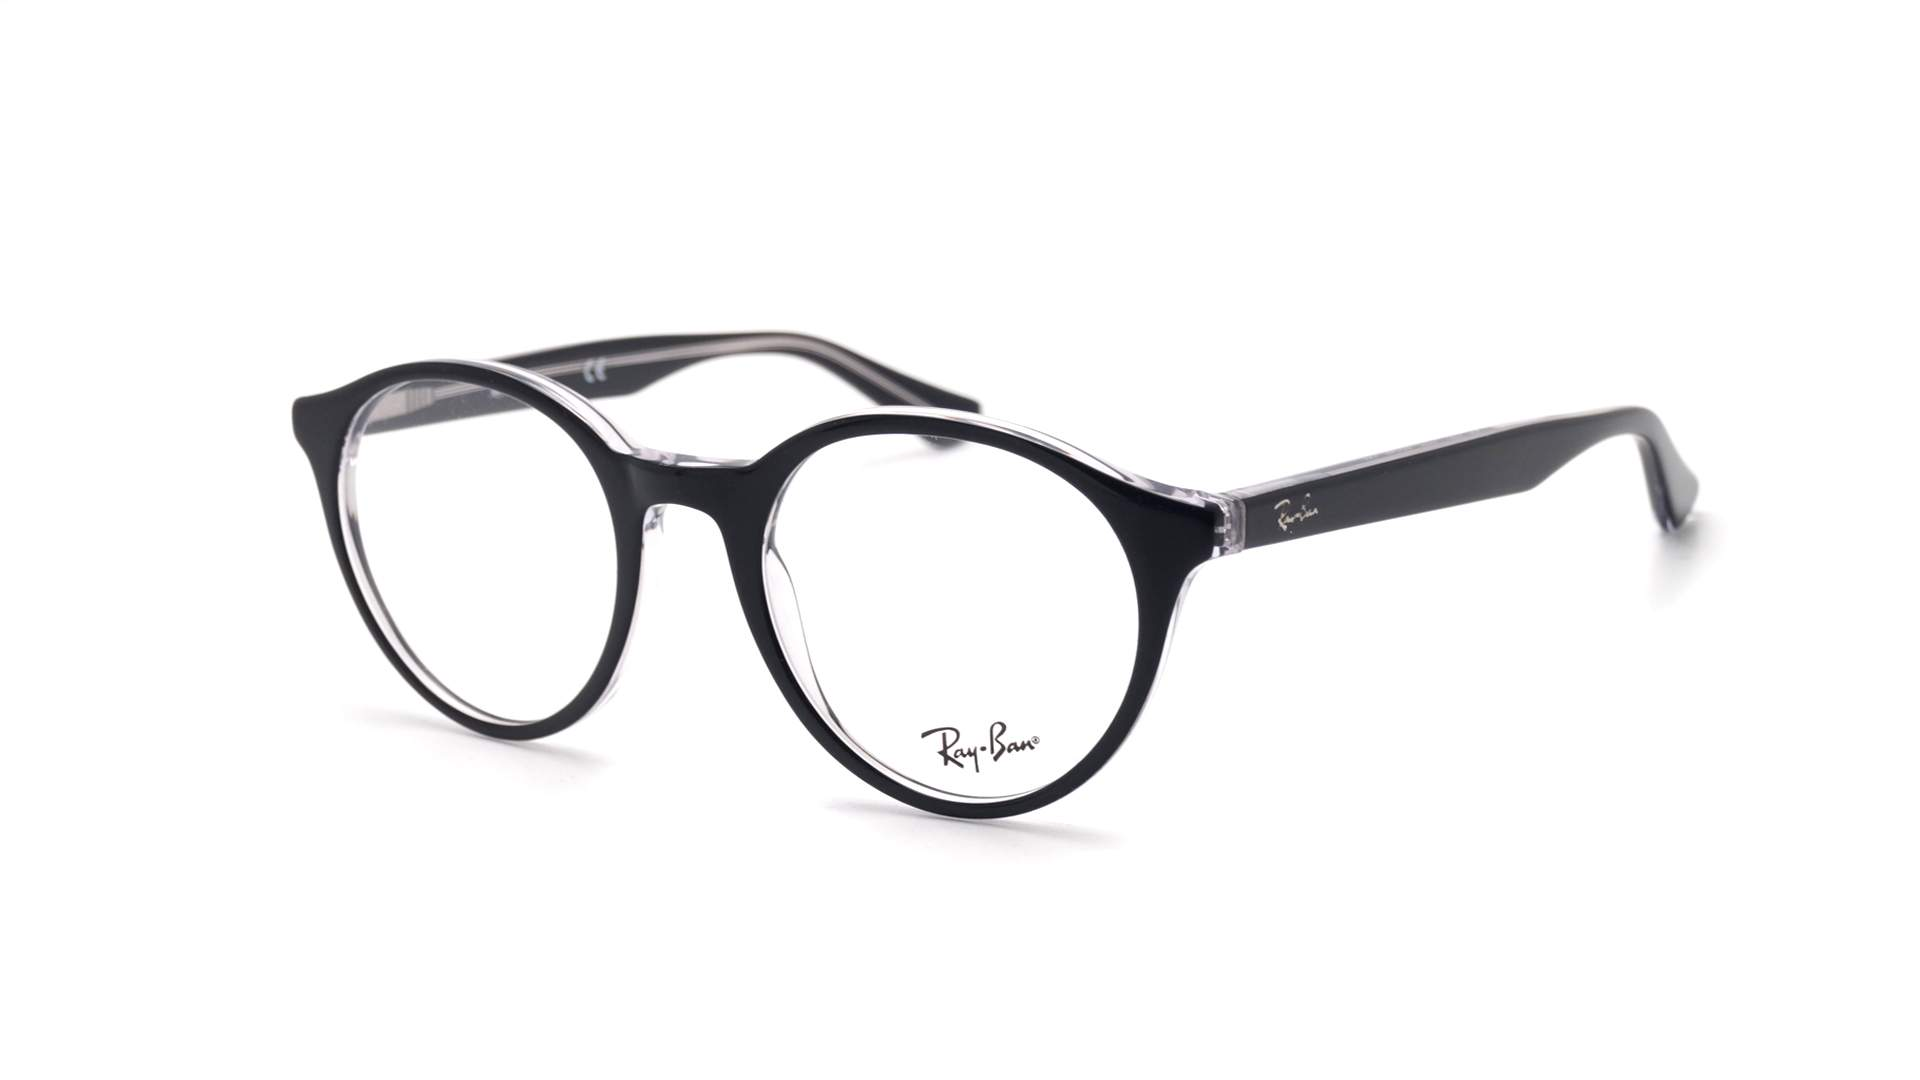 7ea16c4d44 Eyeglasses Ray-Ban RX5361 RB5361 2034 49-20 Black Medium